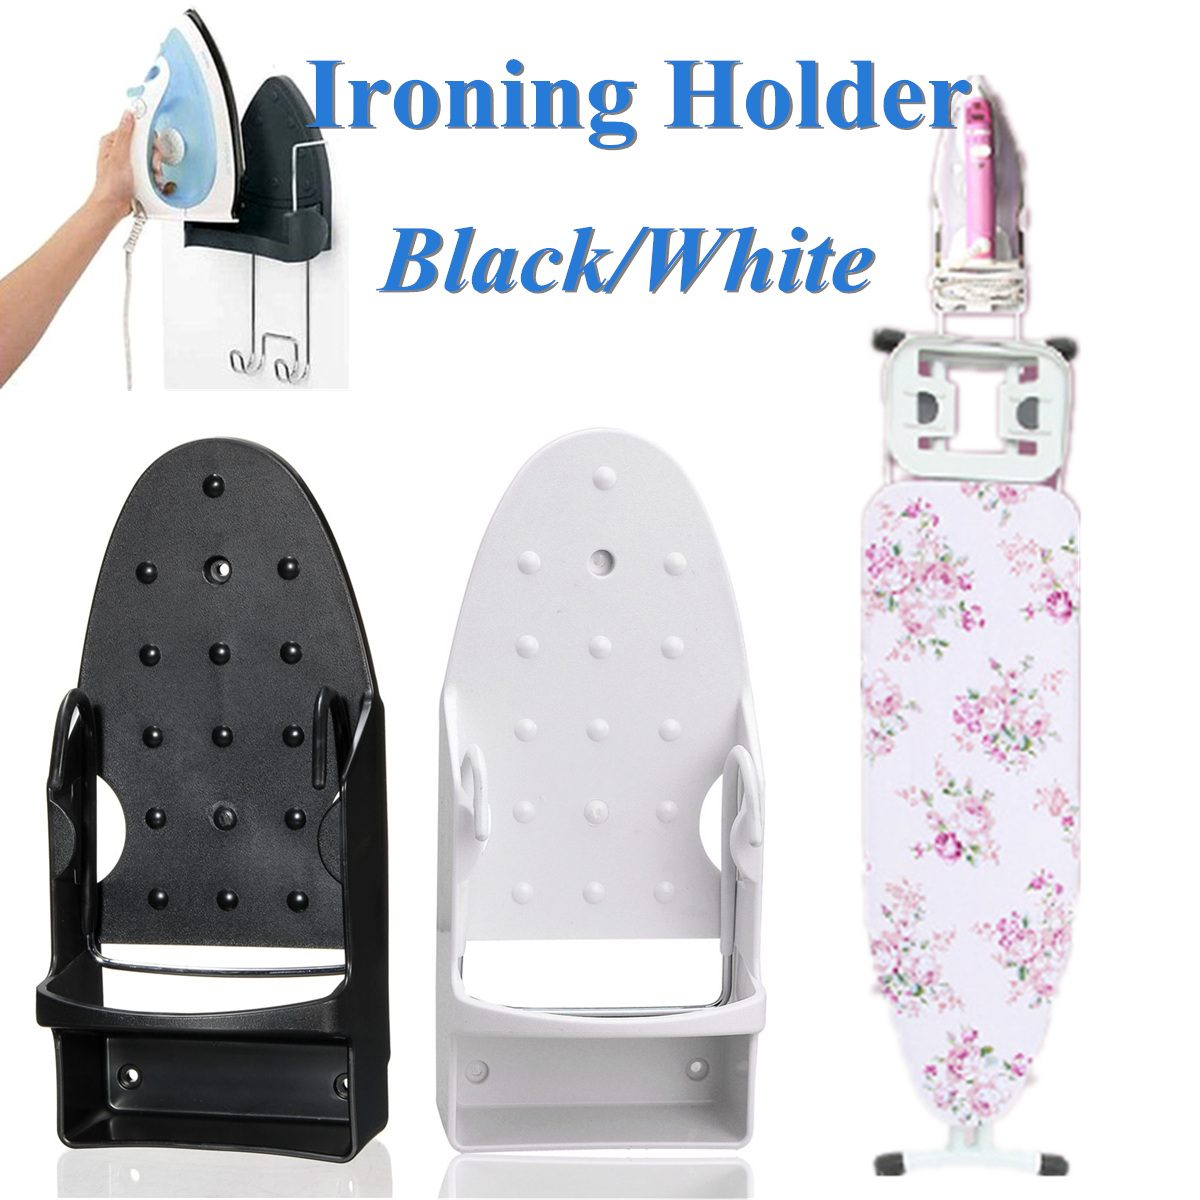 Wall Mounted Electric Iron Storage Rack Rest Stand Heat-Resistant Rack Hanging Ironing Board Holder Home Dryer Accessories